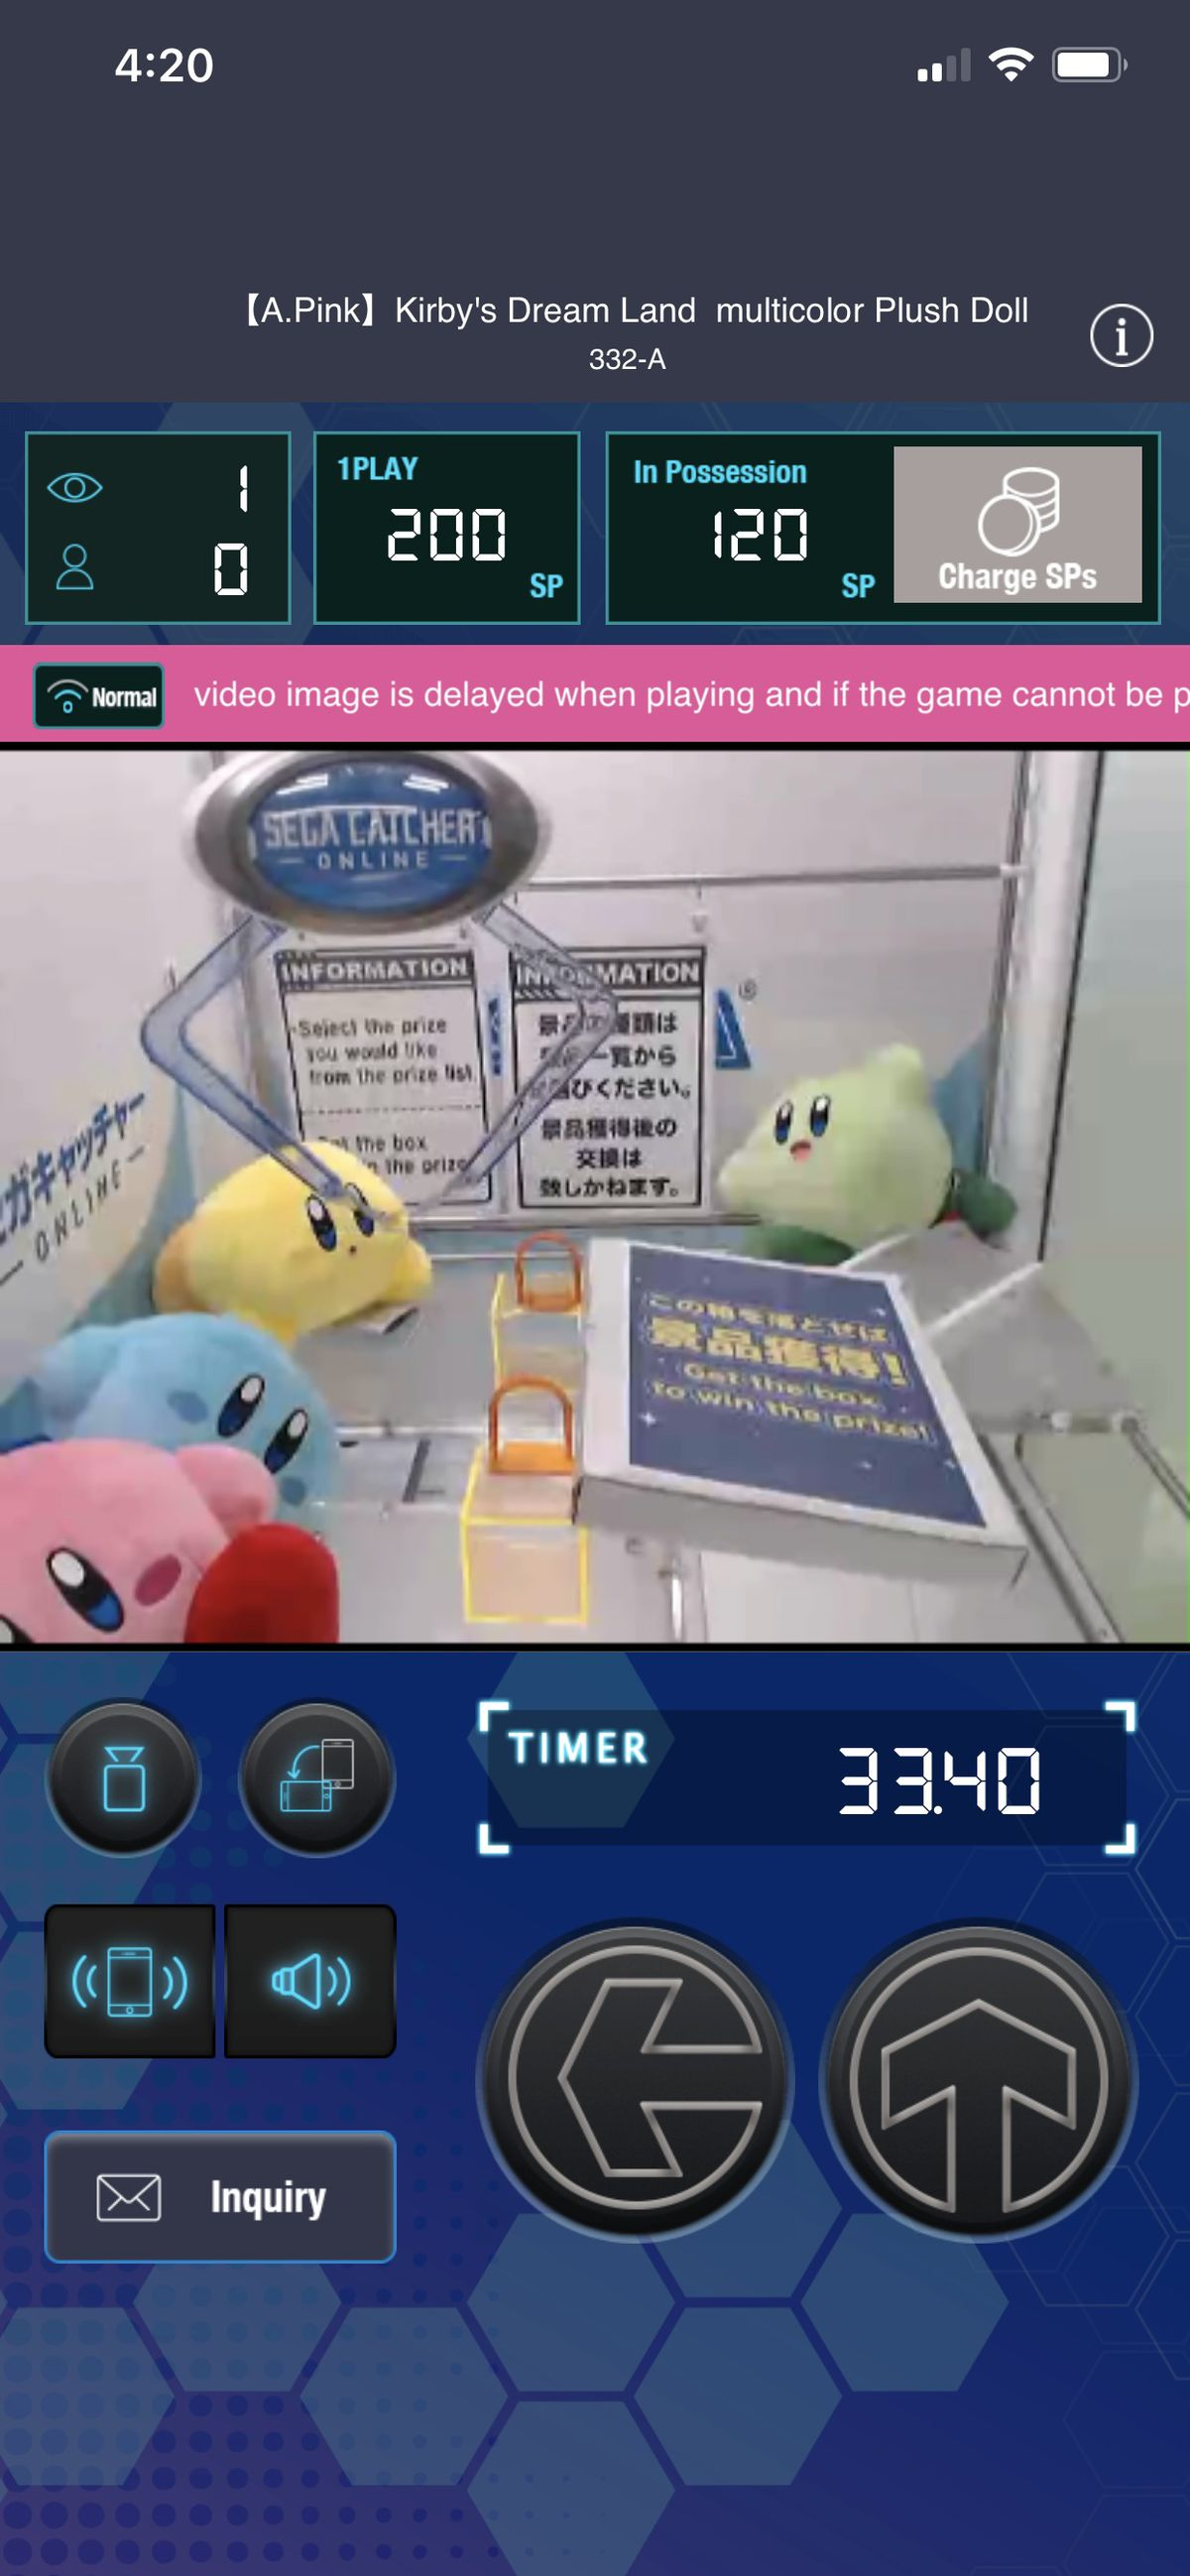 full screenshot of Sega Catcher Online, showing a compartment full of Kirby plushies and a rather ineffectual crane claw overhead